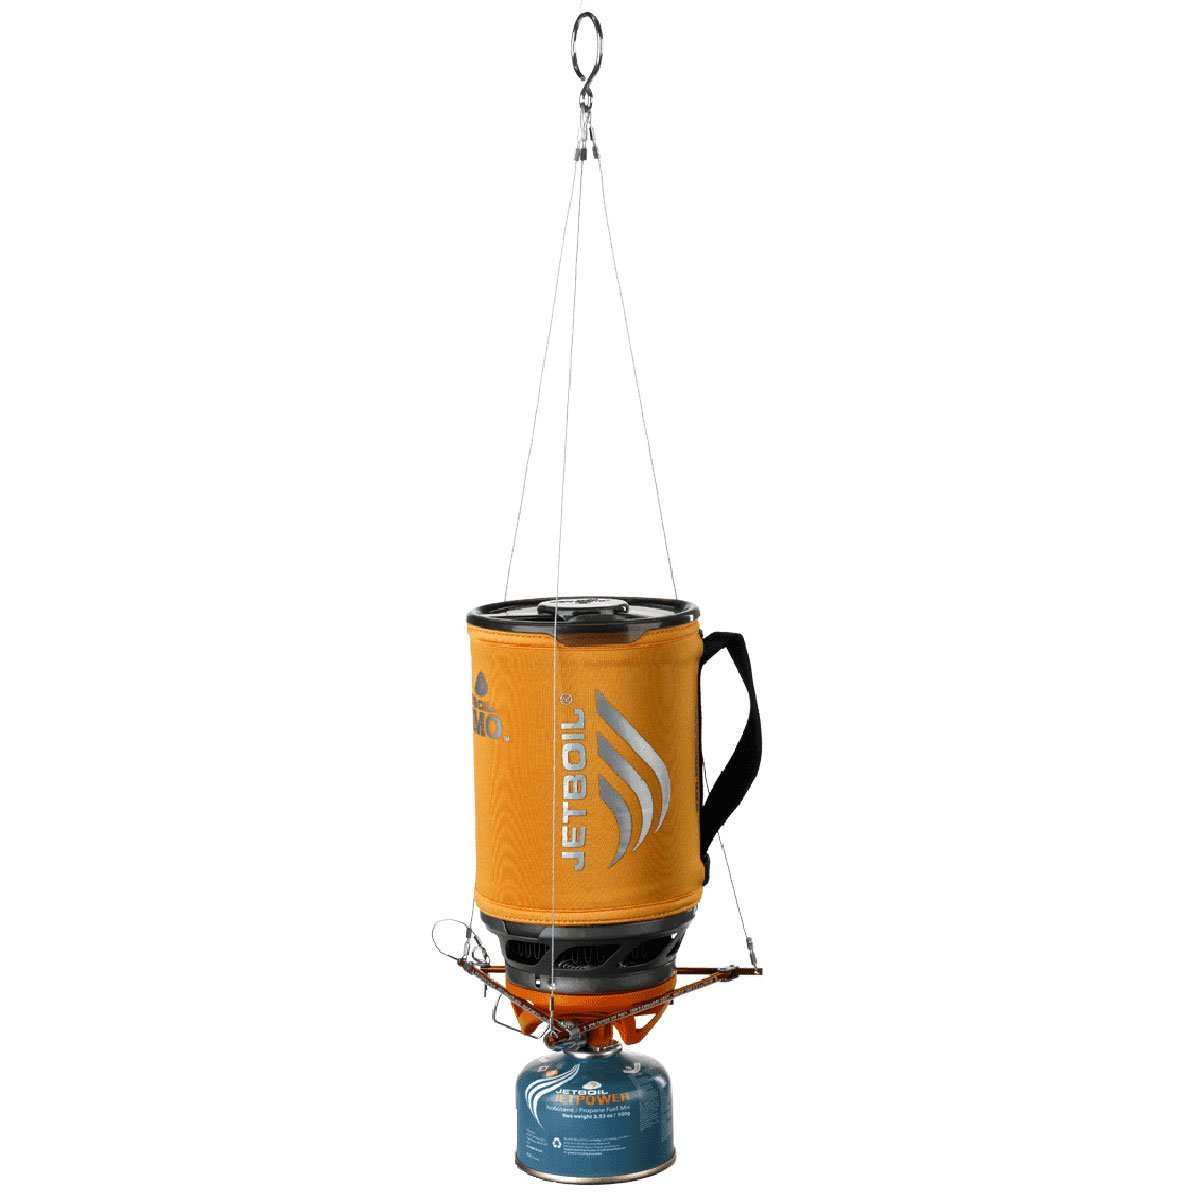 Jetboil Hangingキット B01N9GZRRP   One Size